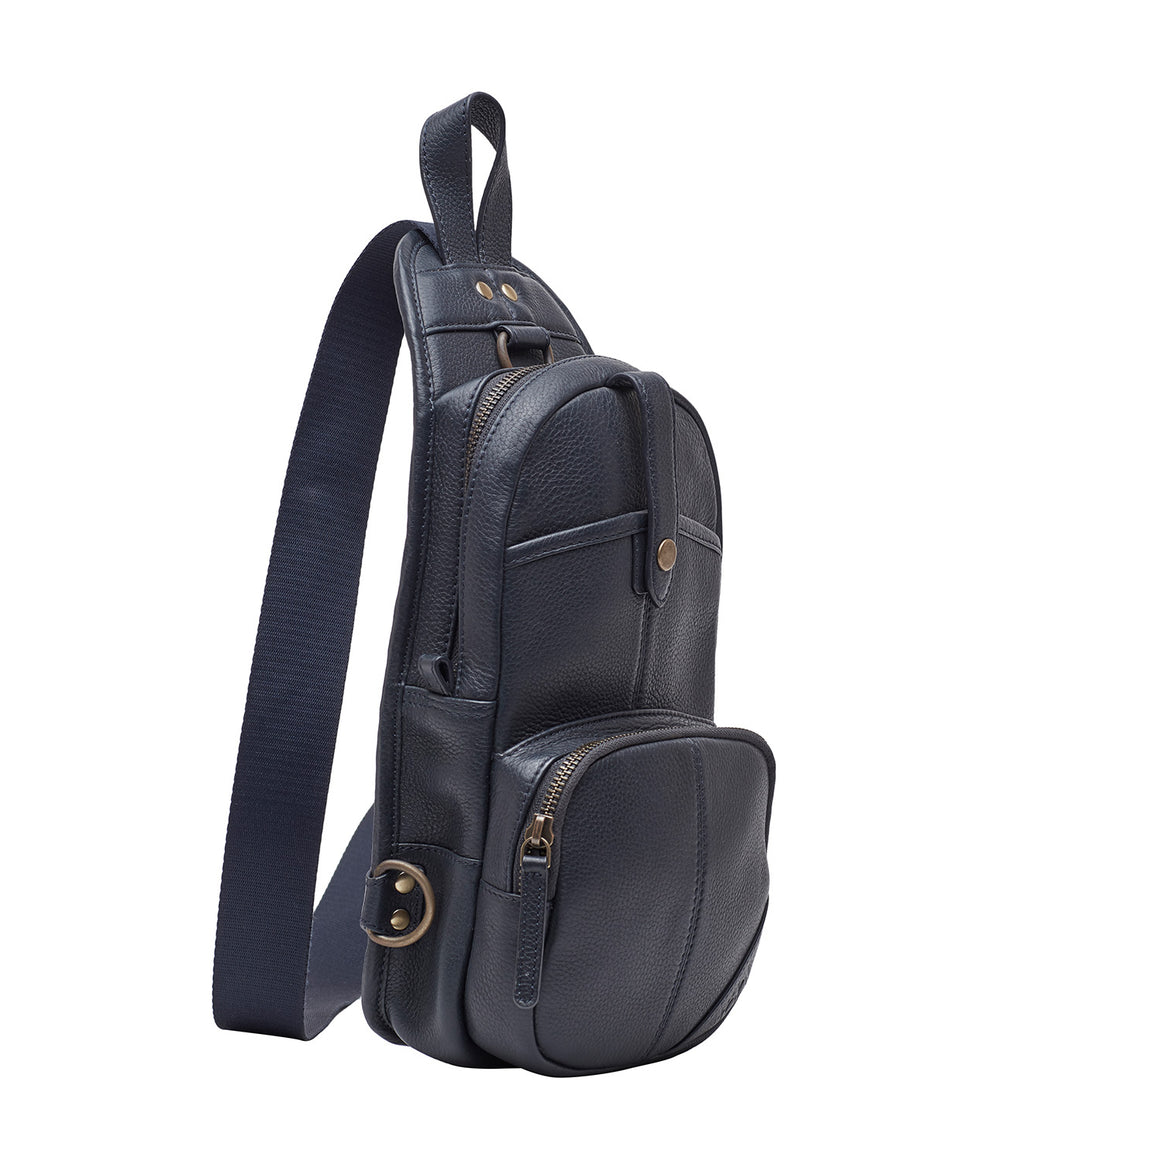 BP 0014 - TOHL PERON MEN'S BACKPACK - NAVY